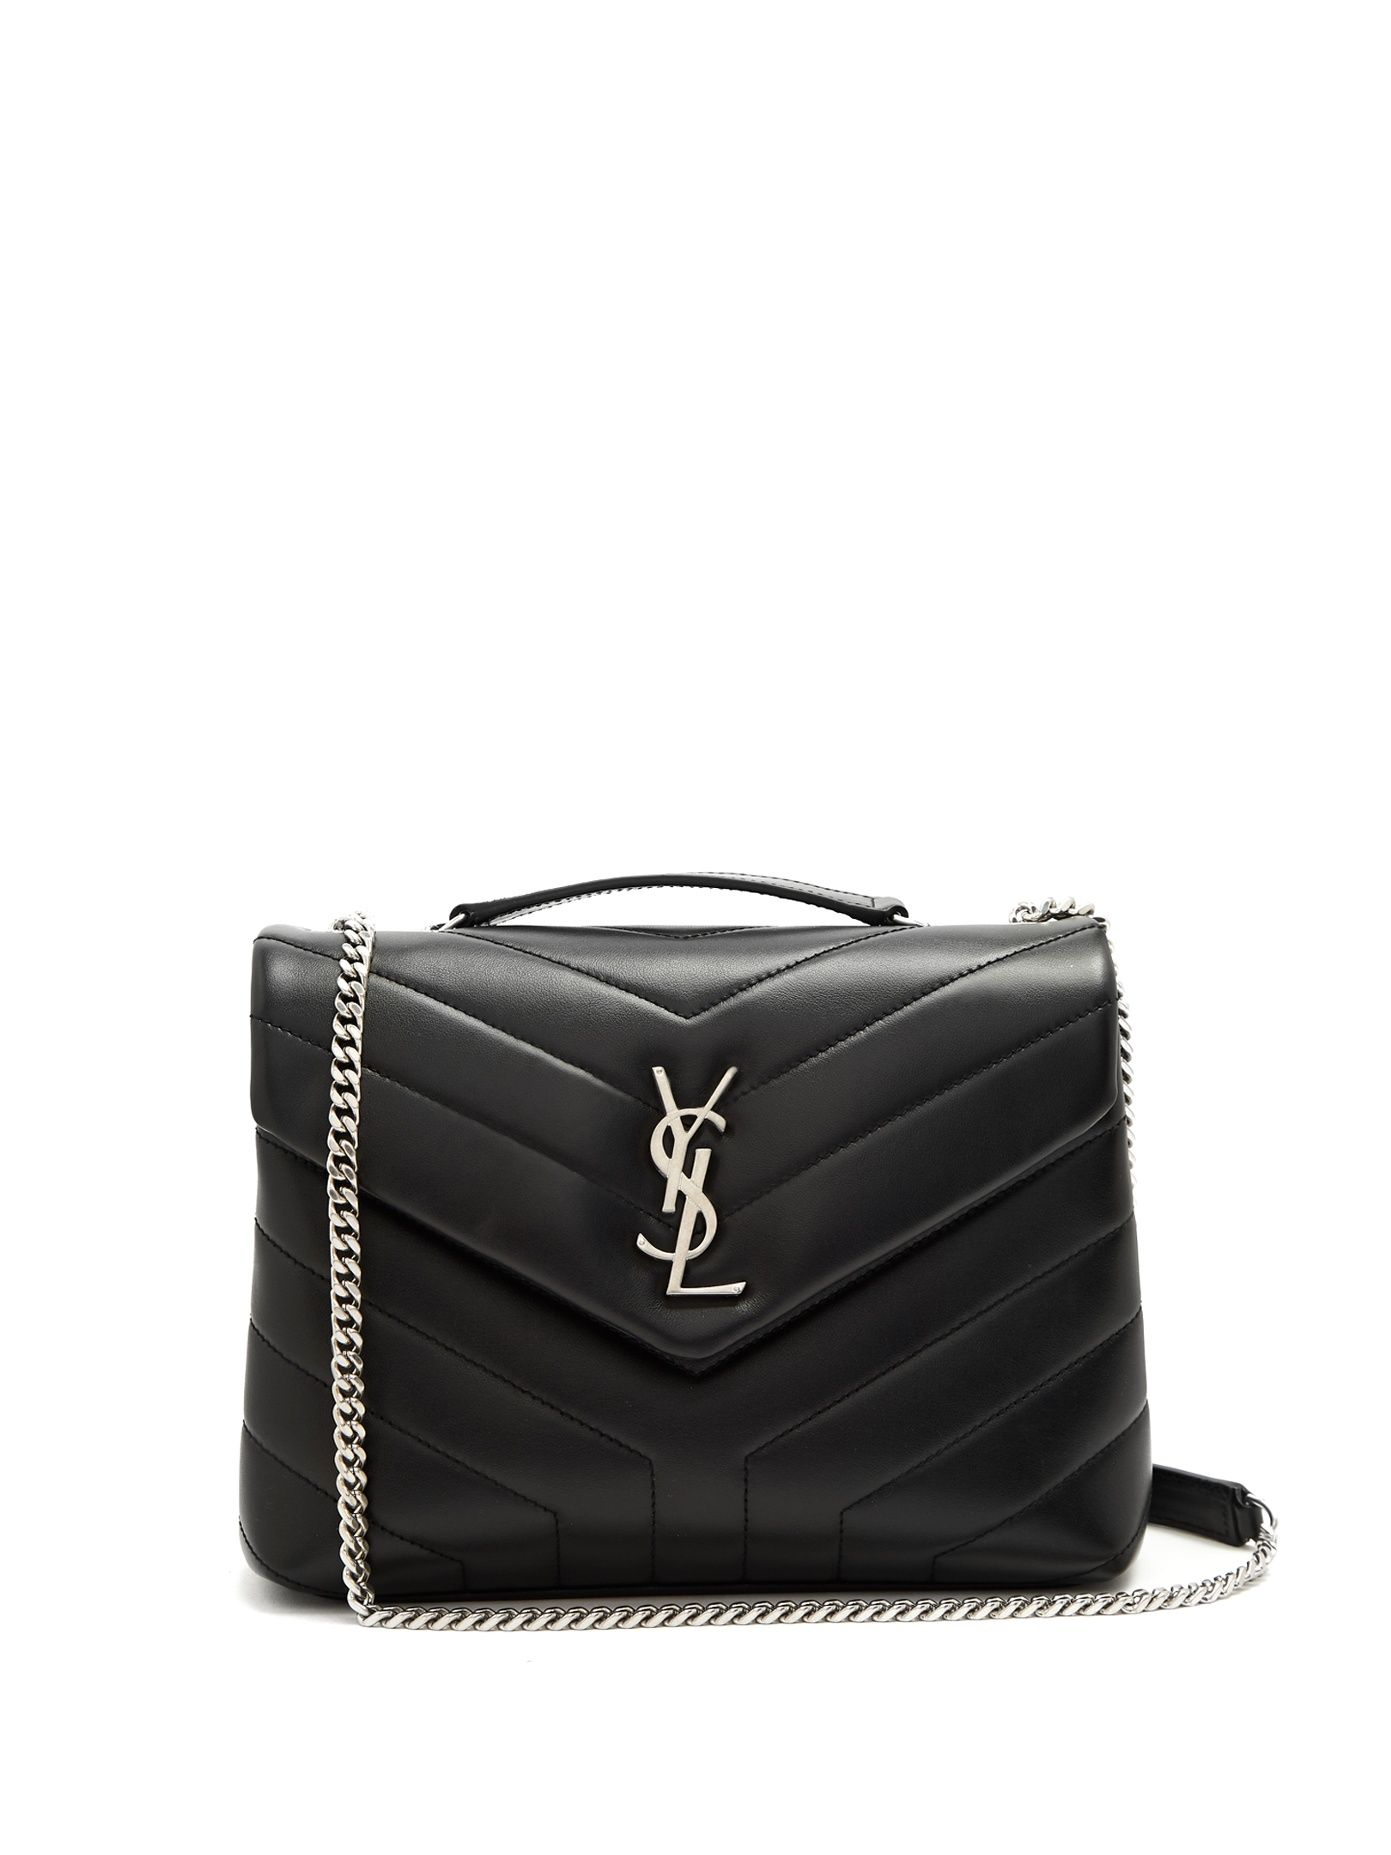 51719455be Click here to buy Saint Laurent Lou Lou small quilted-leather shoulder bag  at MATCHESFASHION.COM